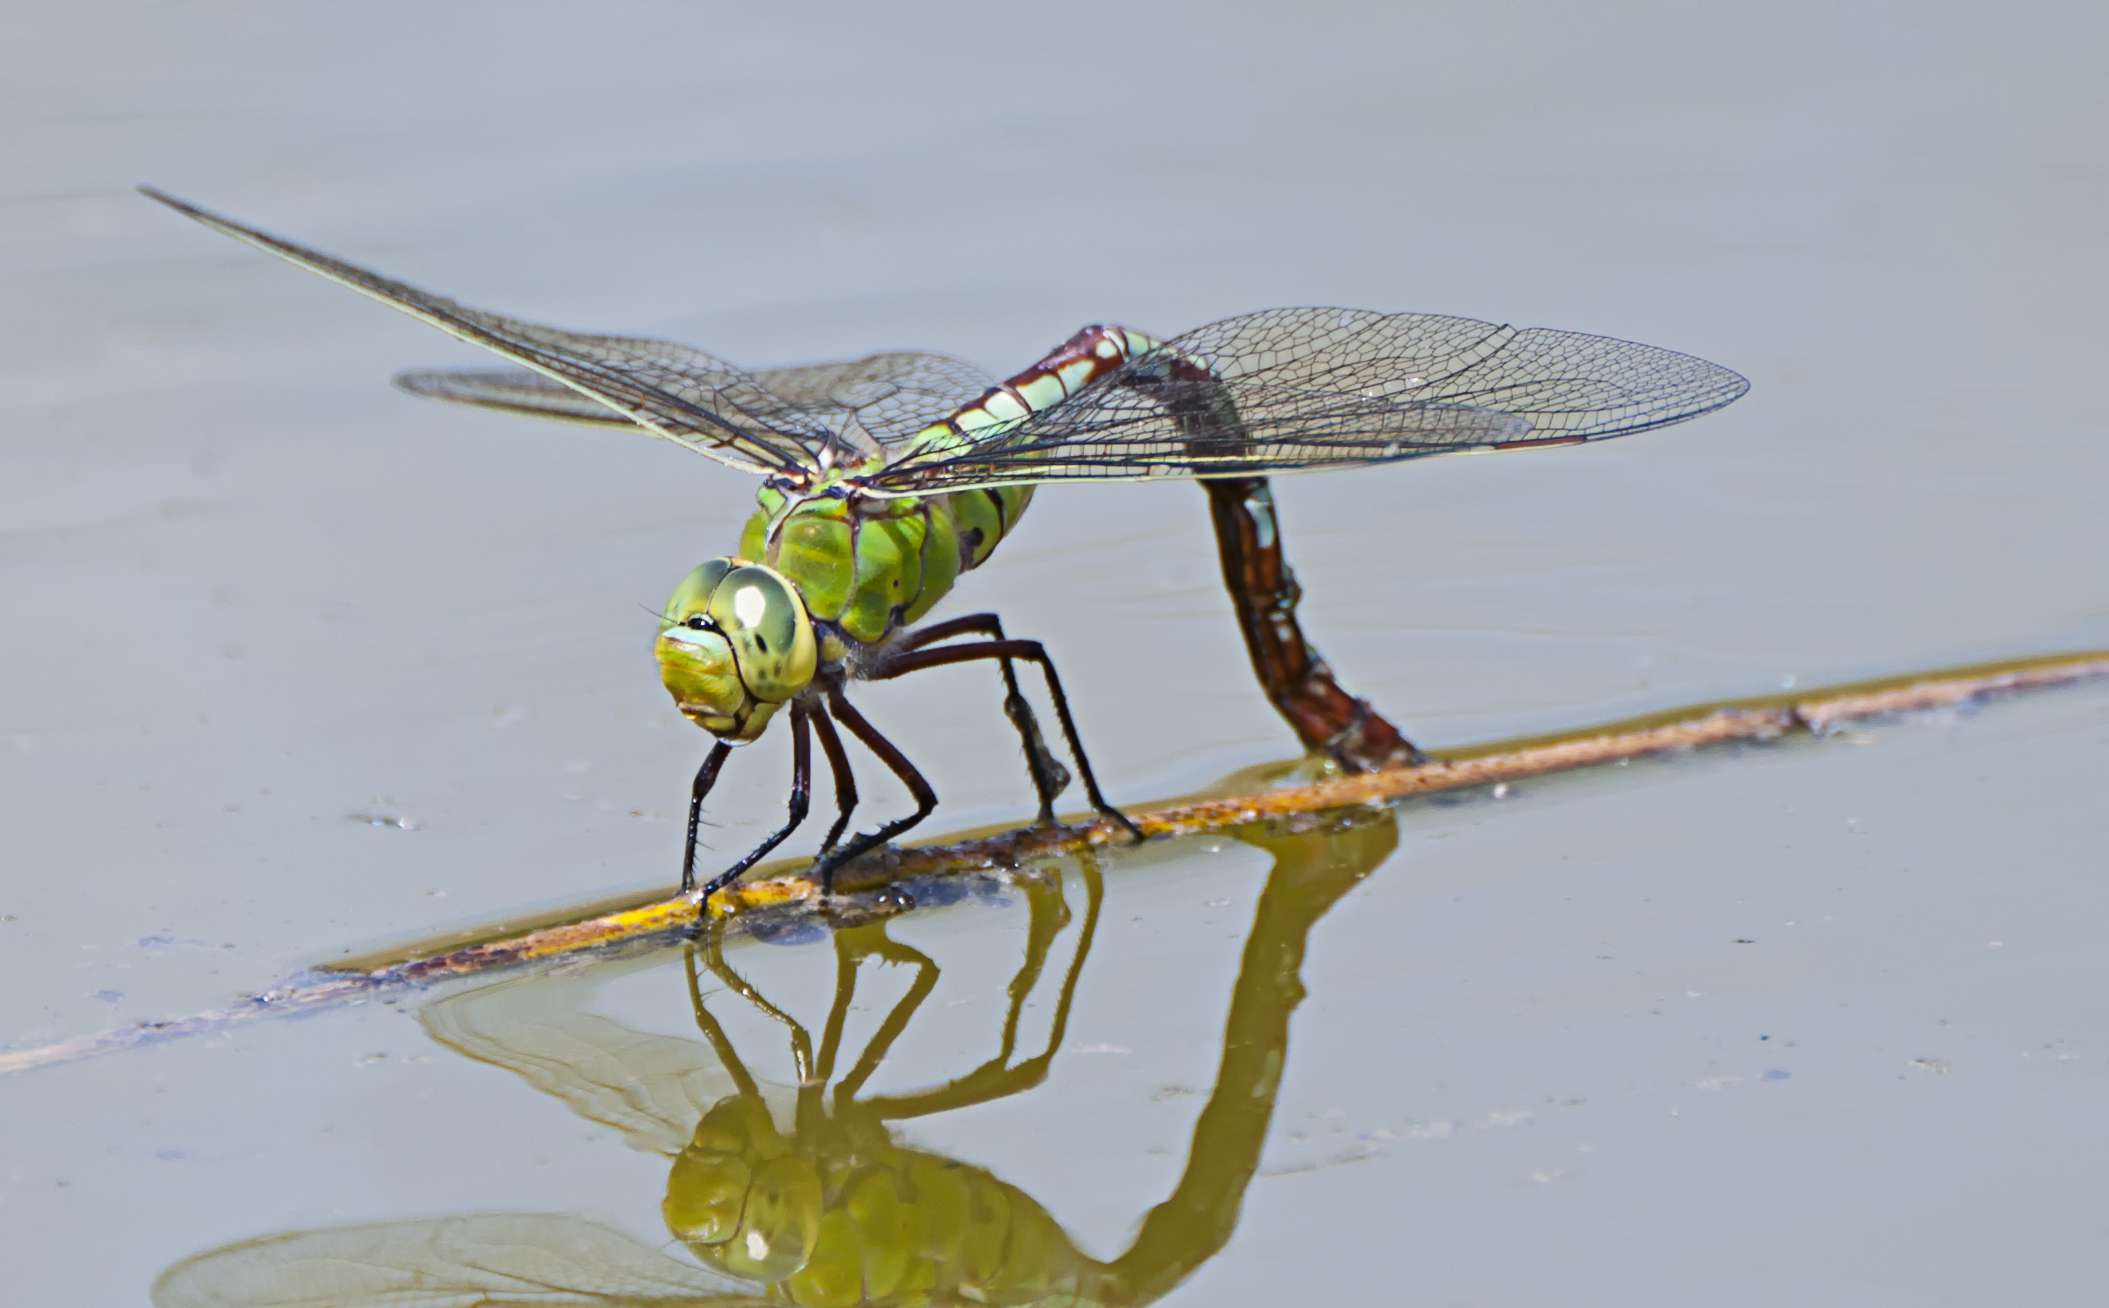 Dragonflies can lay eggs in water that is even saltier than the ocean.